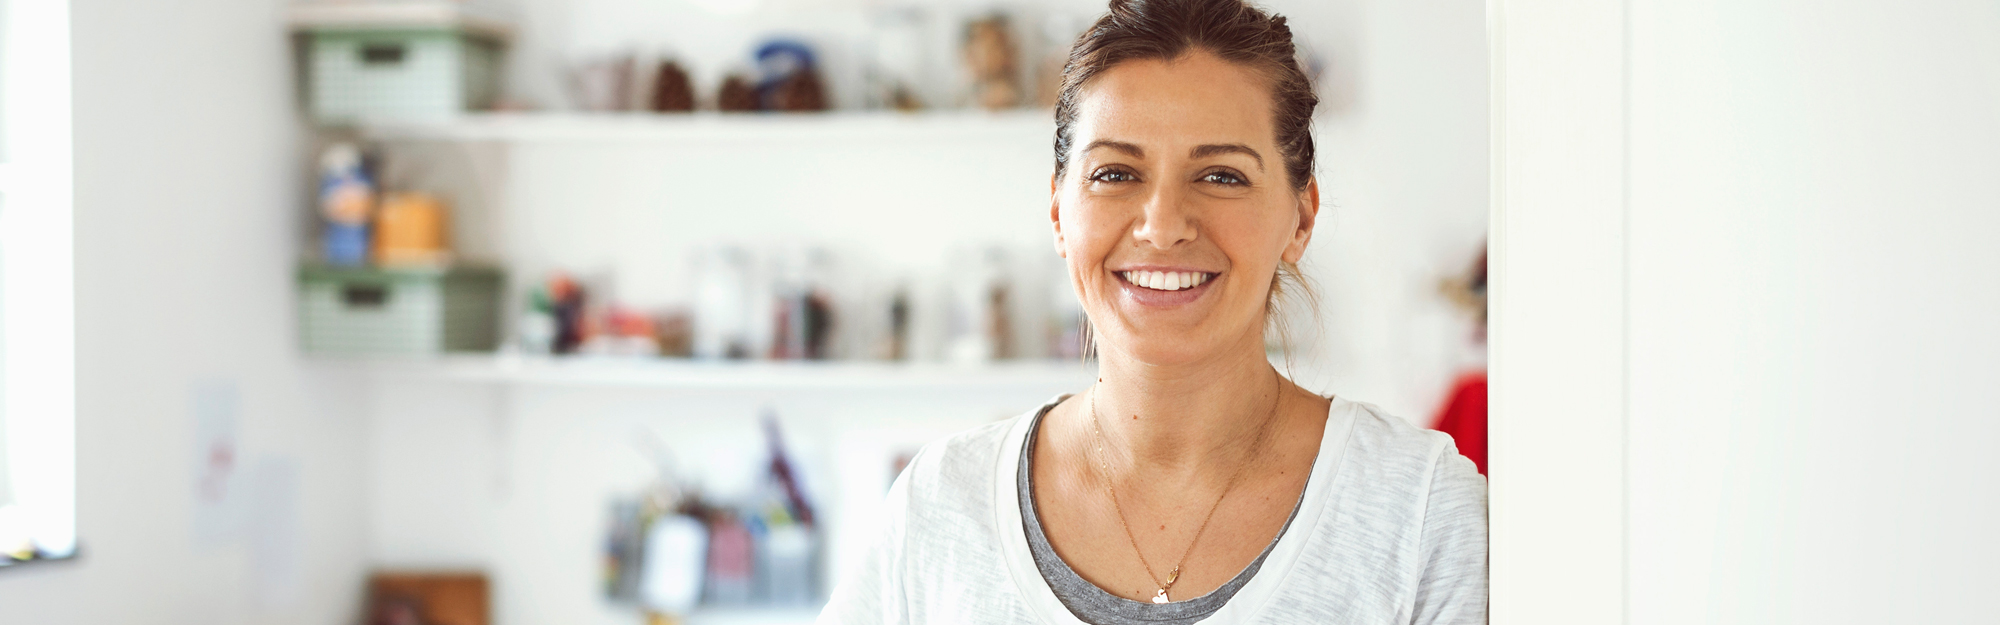 Smiling woman leaning shoulder against wall